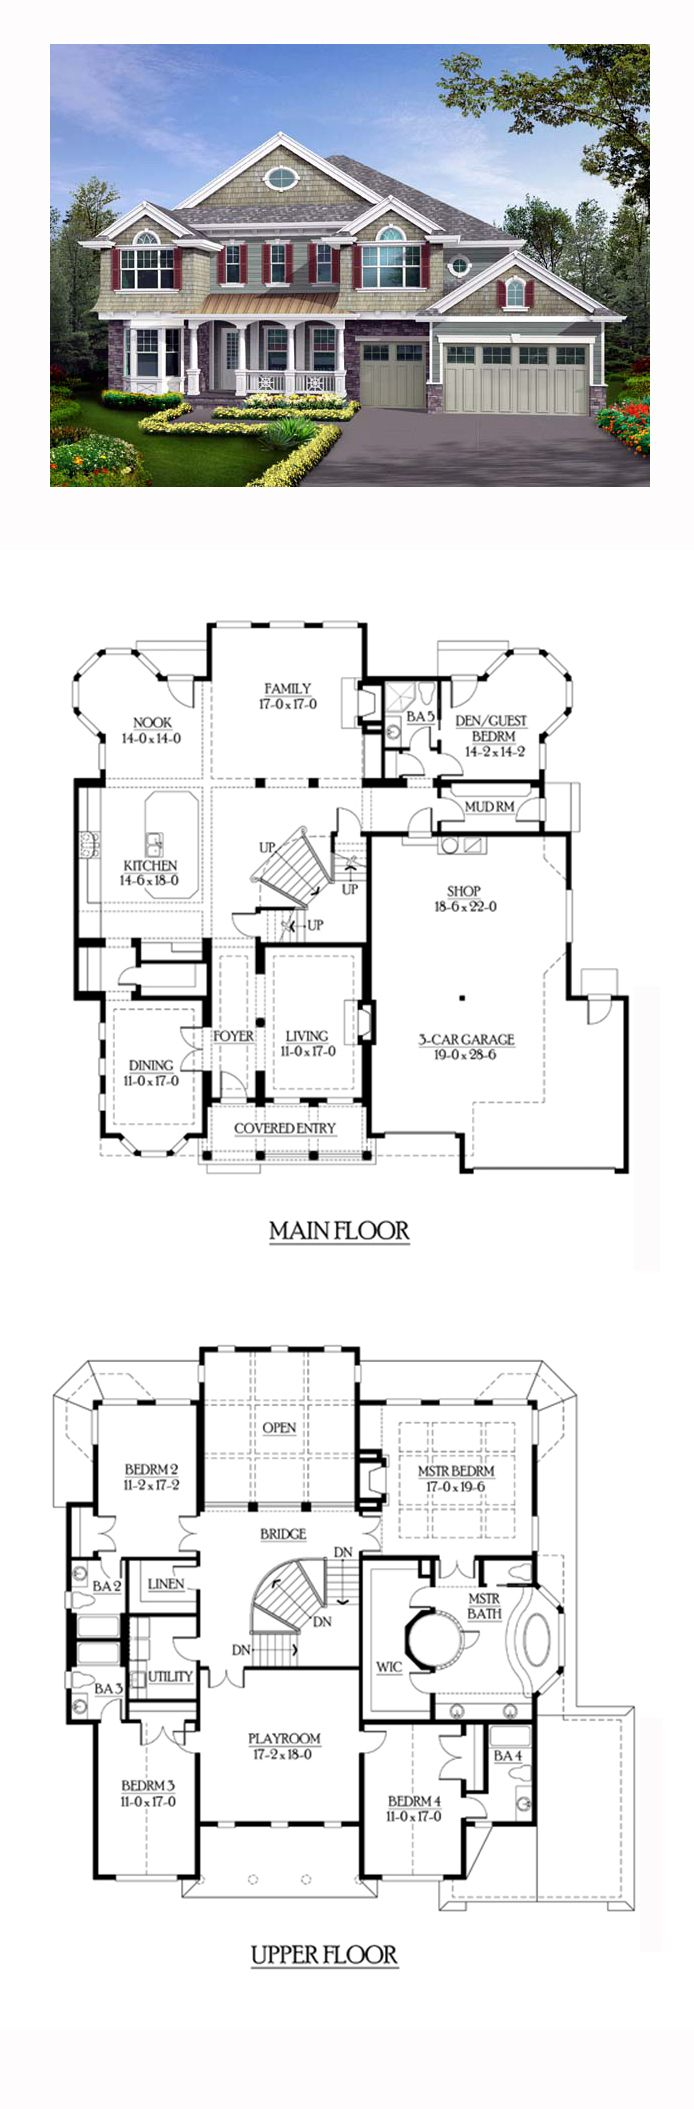 Best 25 floor plans ideas on pinterest house floor for Coolhouseplans com